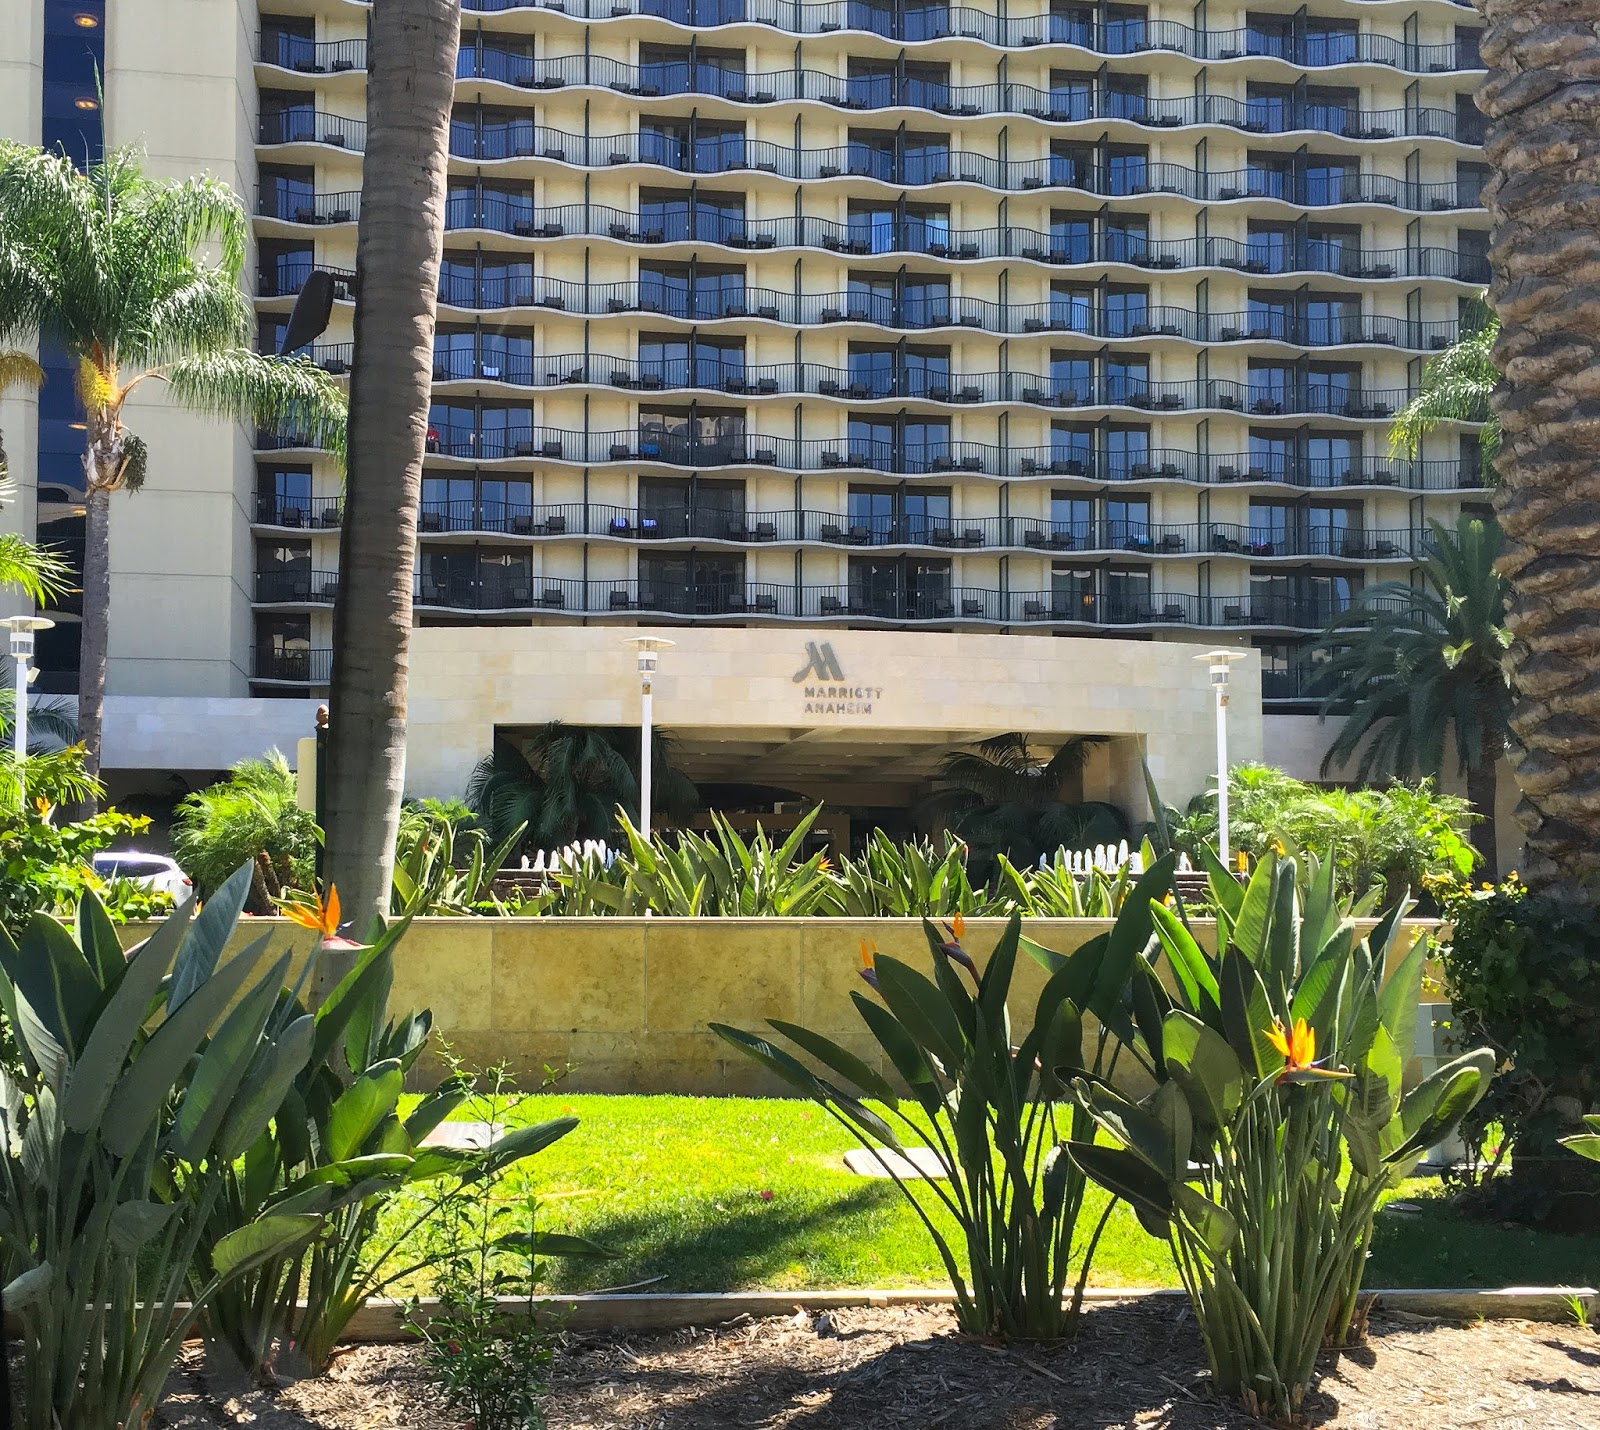 ninasstyleblog,Travel, MarriottHotel California